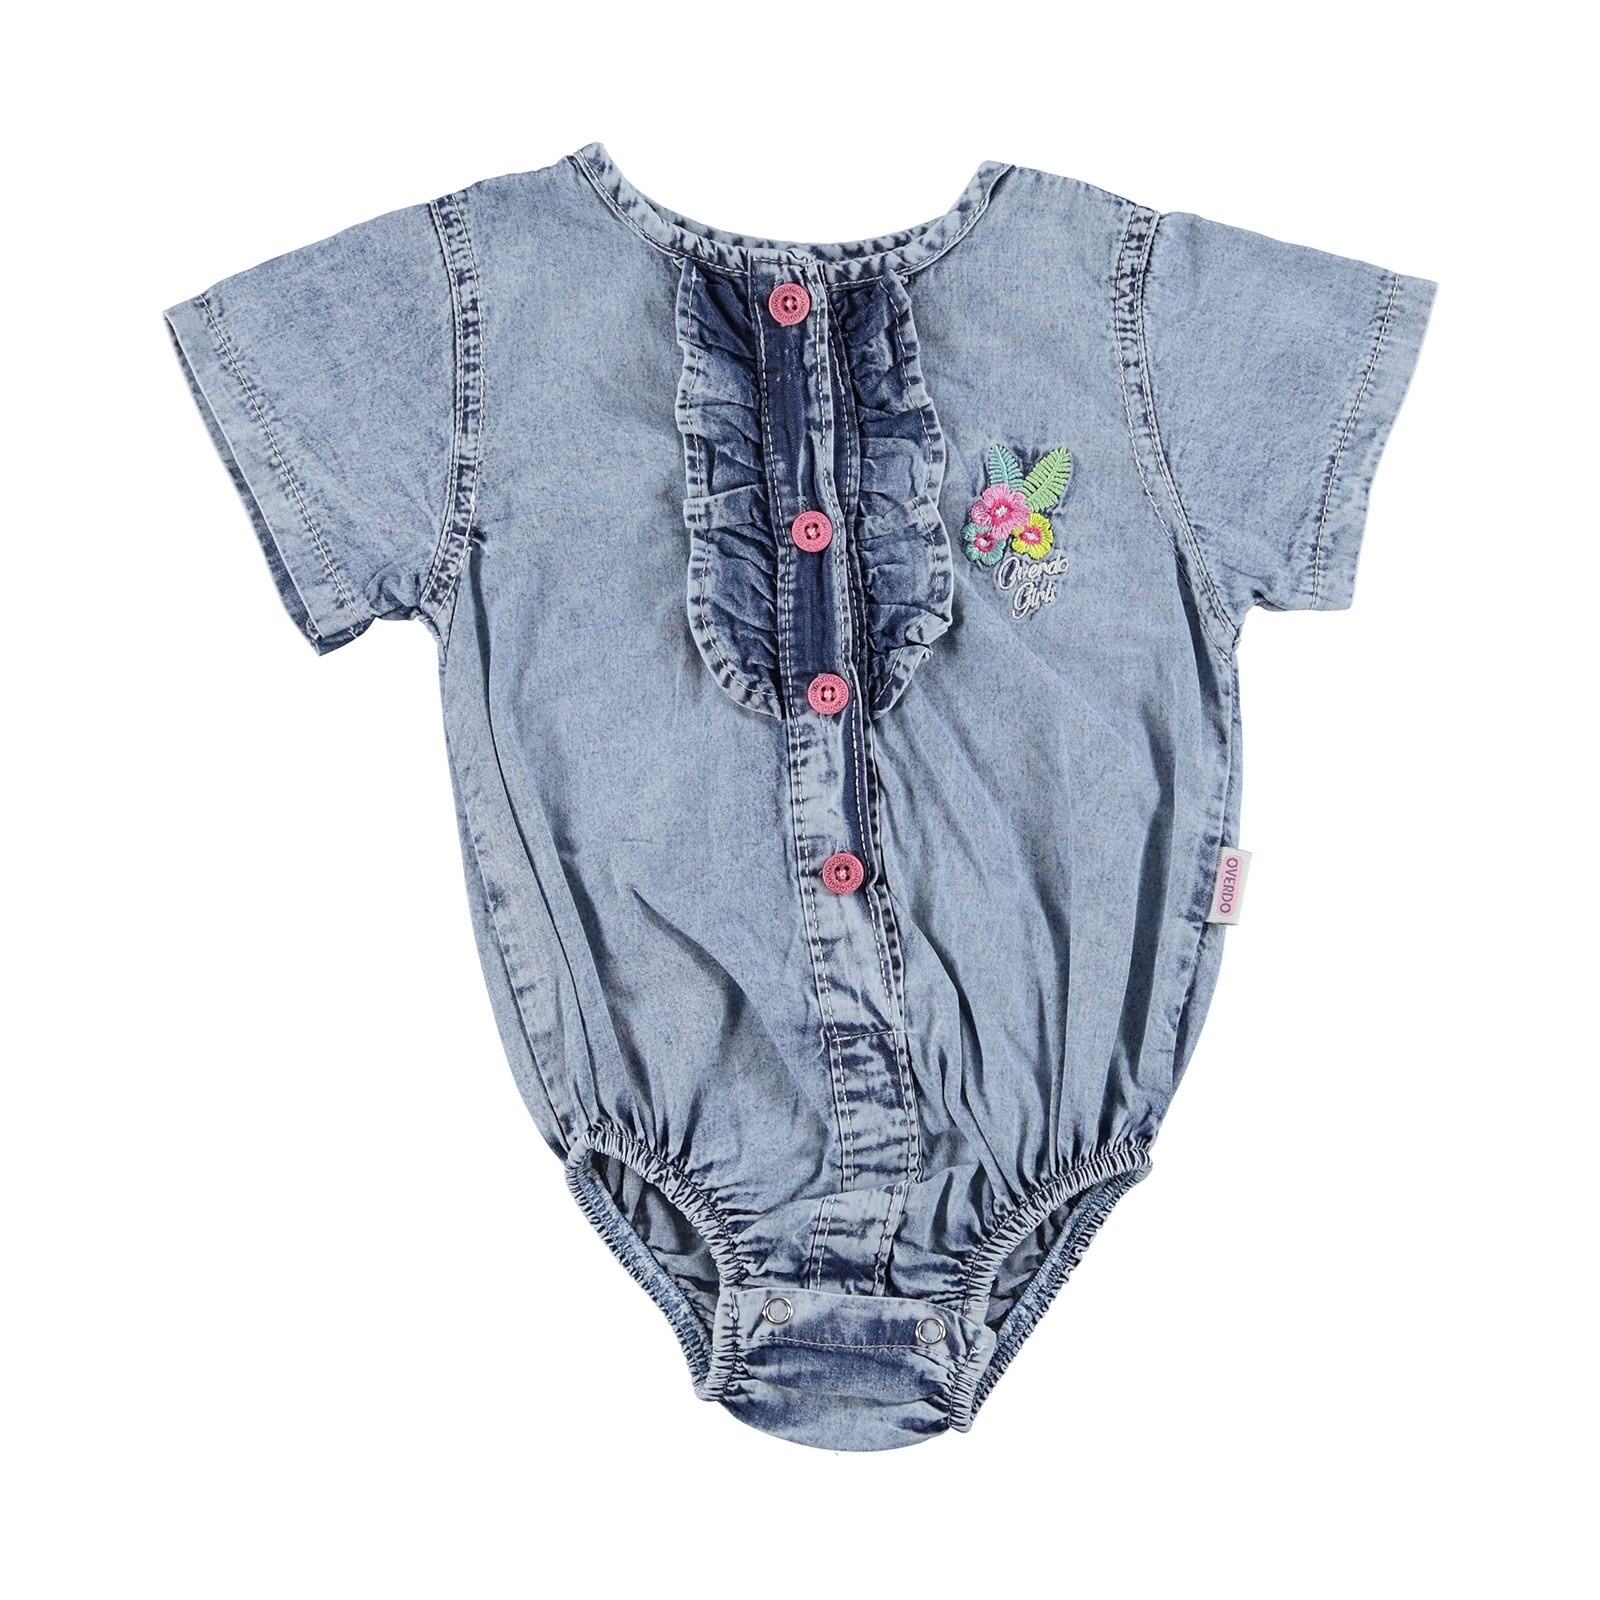 Ebebek Overdo Baby Girl Embroidered Short Sleeve Denim Shirt Bodysuit